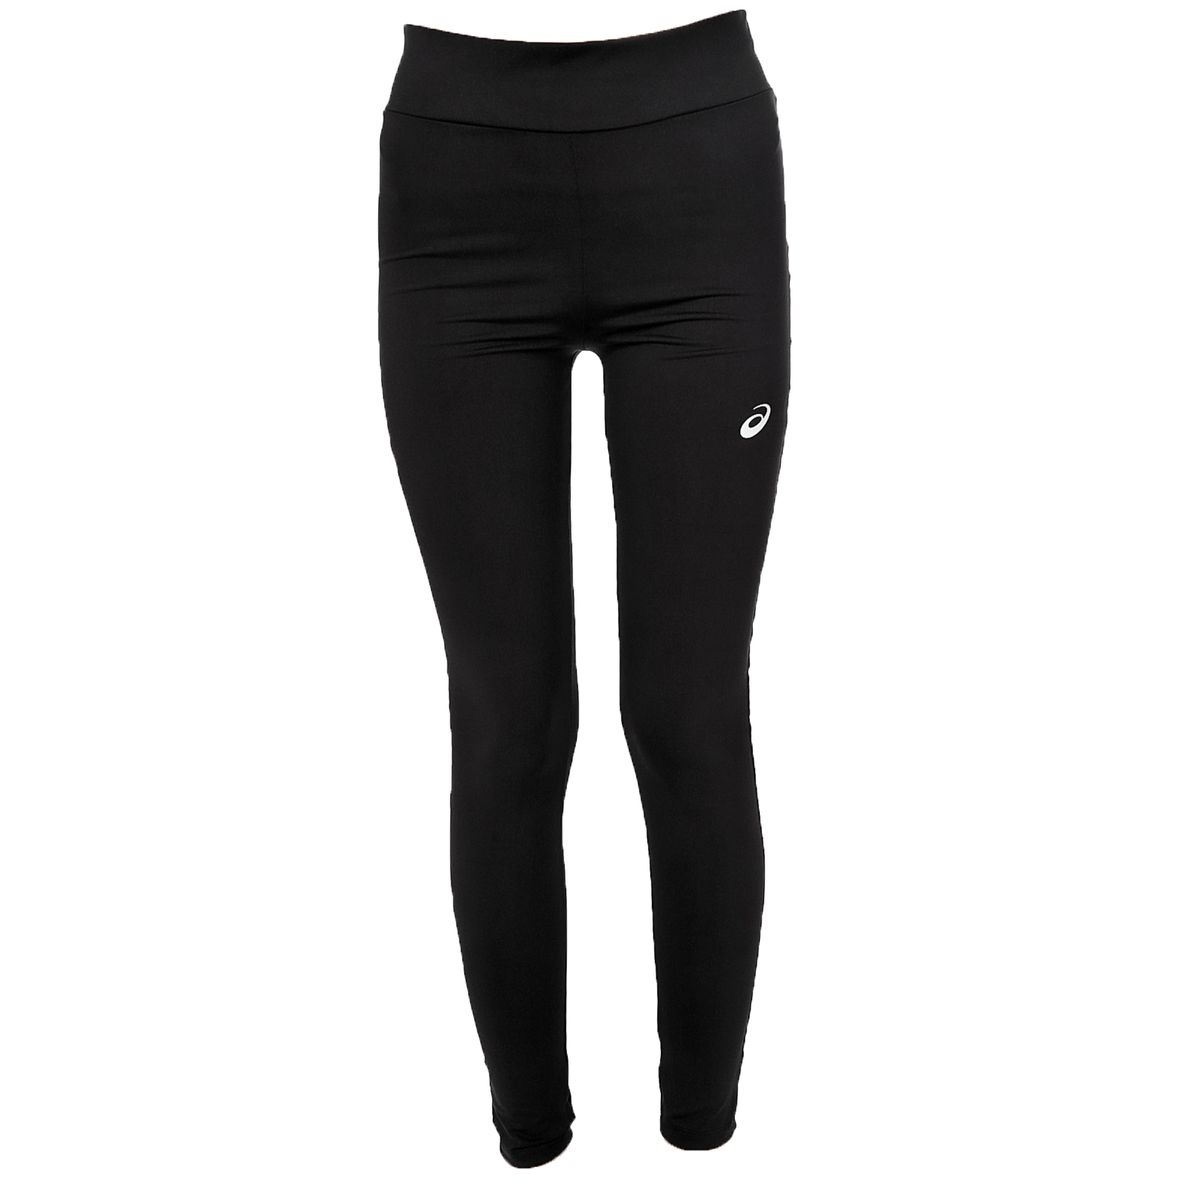 Calca-Asics-Tight---Feminino---Preto